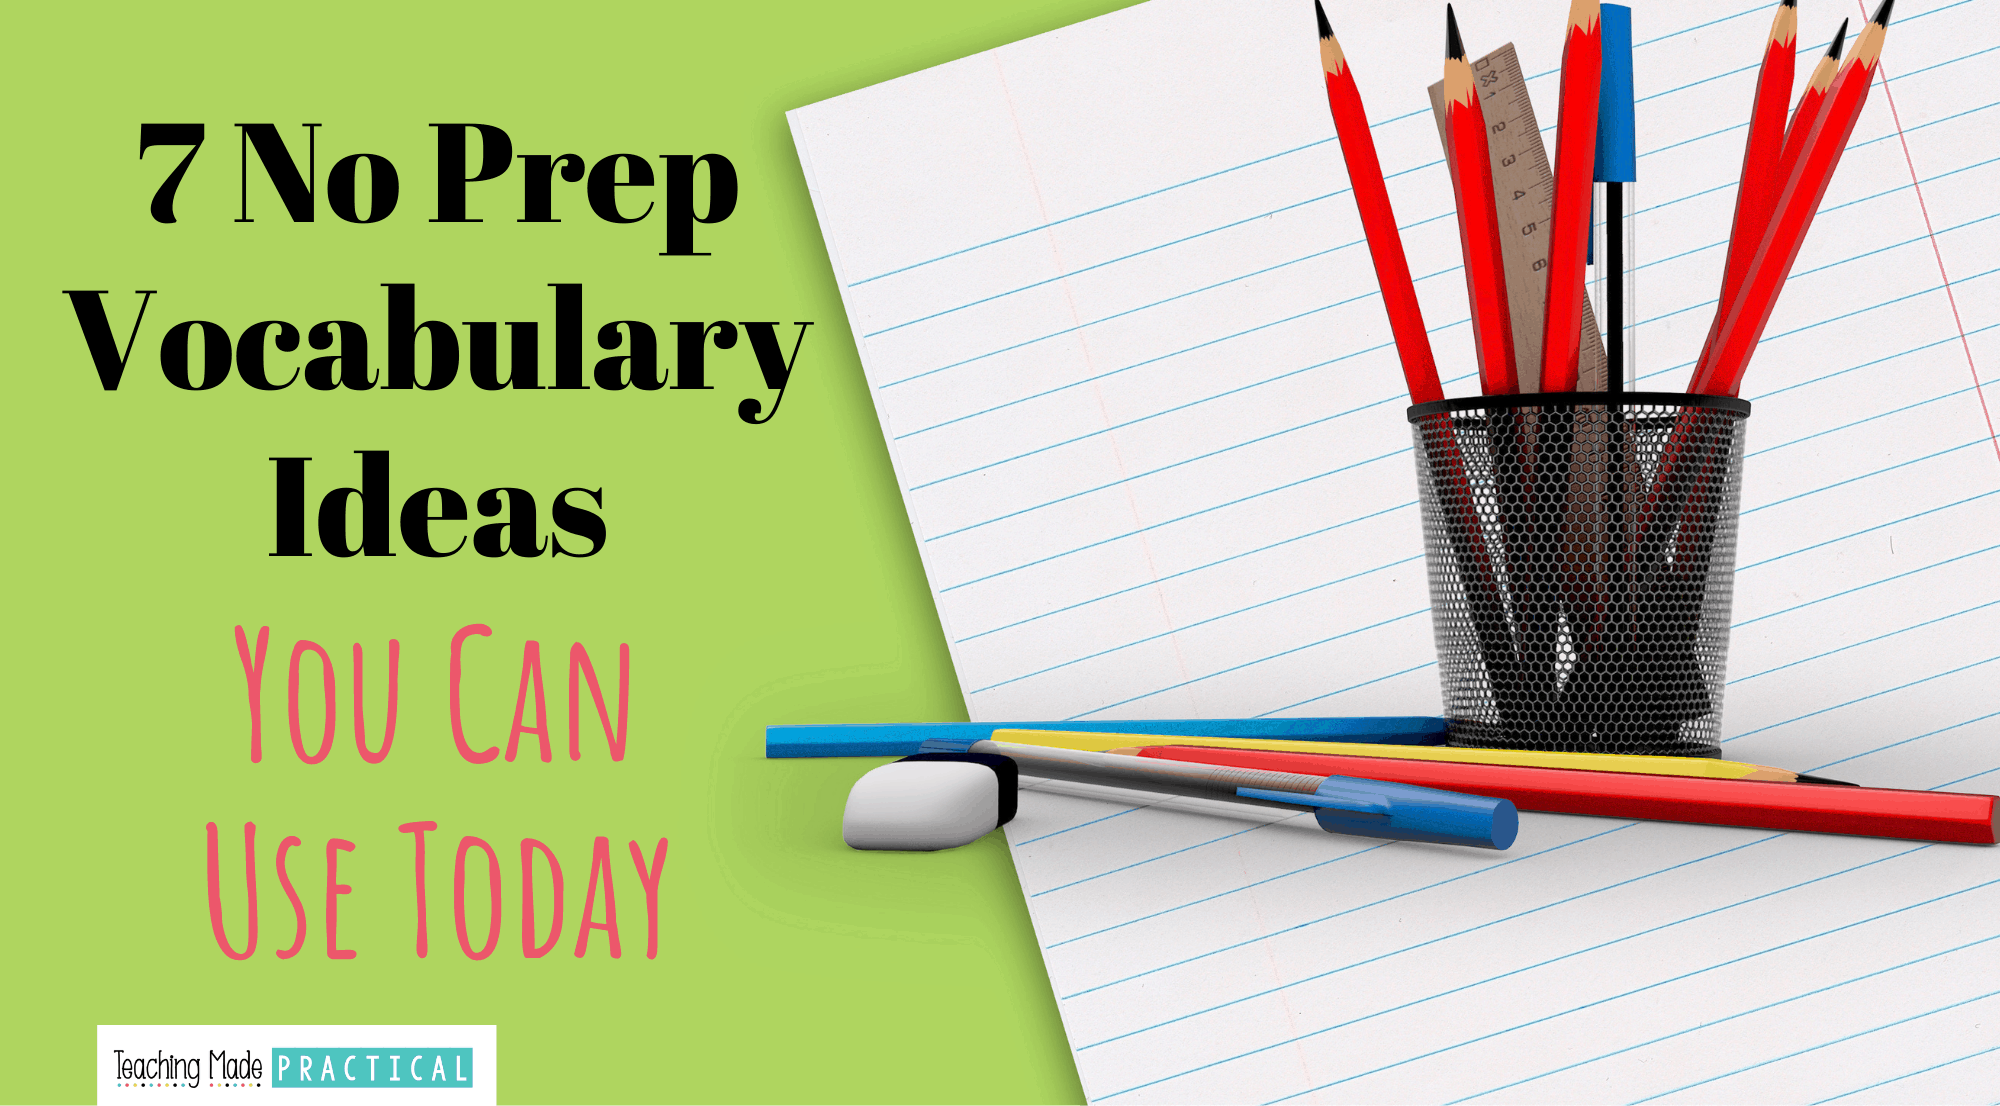 no prep vocabulary ideas and activities for 3rd, 4th, and 5th grade